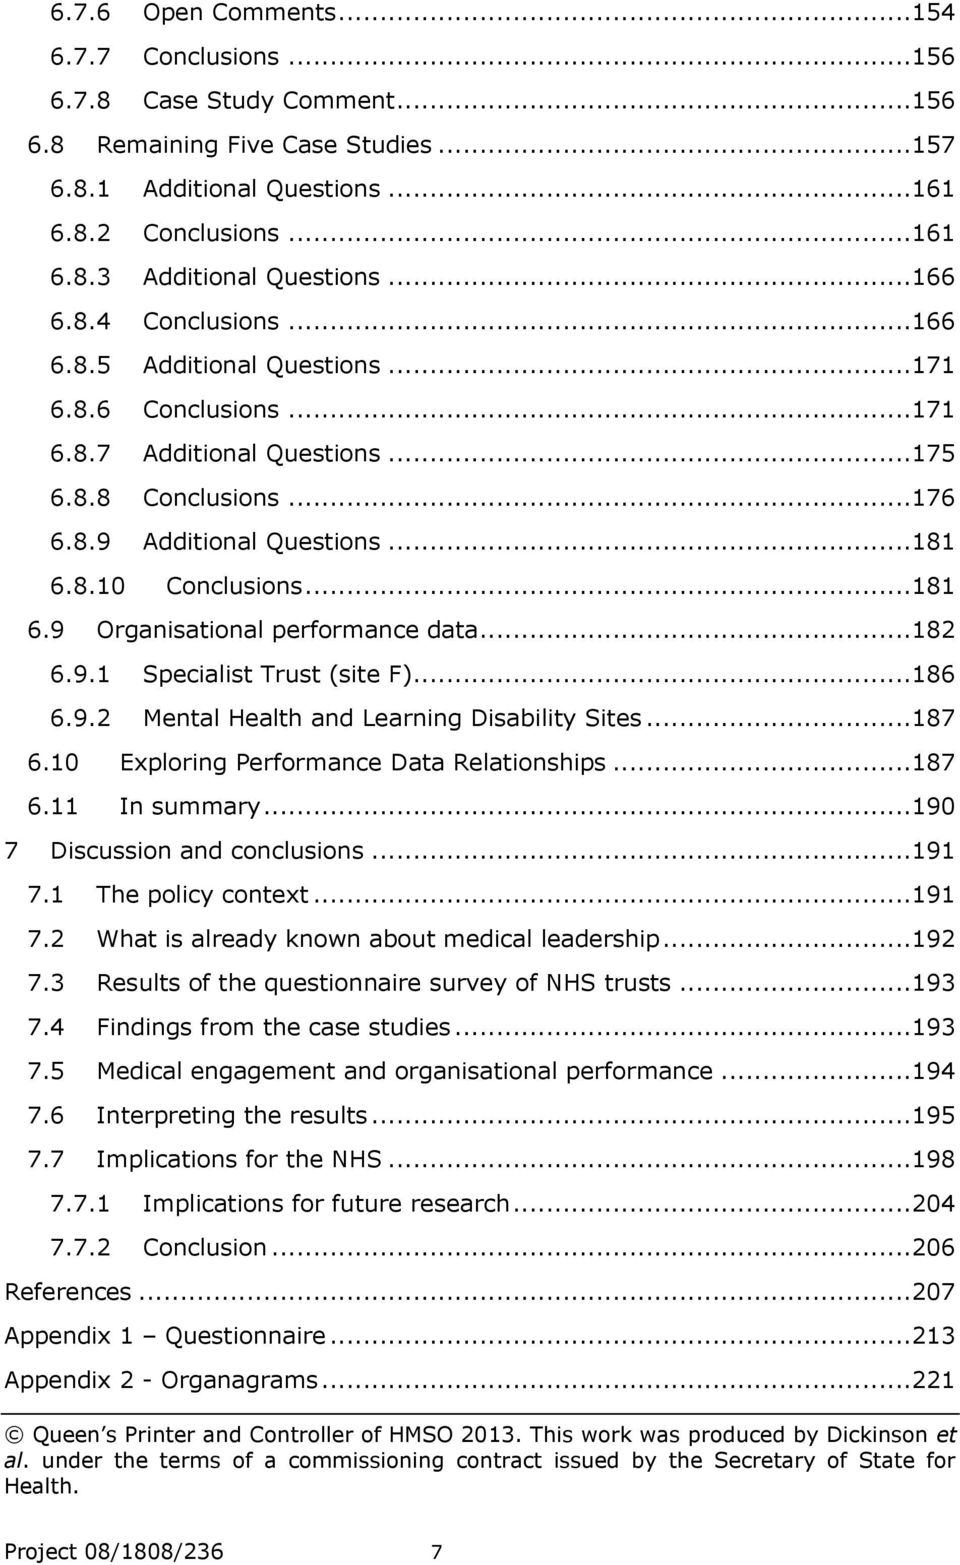 ..181 6.9 Organisational performance data...182 6.9.1 Specialist Trust (site F)...186 6.9.2 Mental Health and Learning Disability Sites...187 6.10 Exploring Performance Data Relationships...187 6.11 In summary.